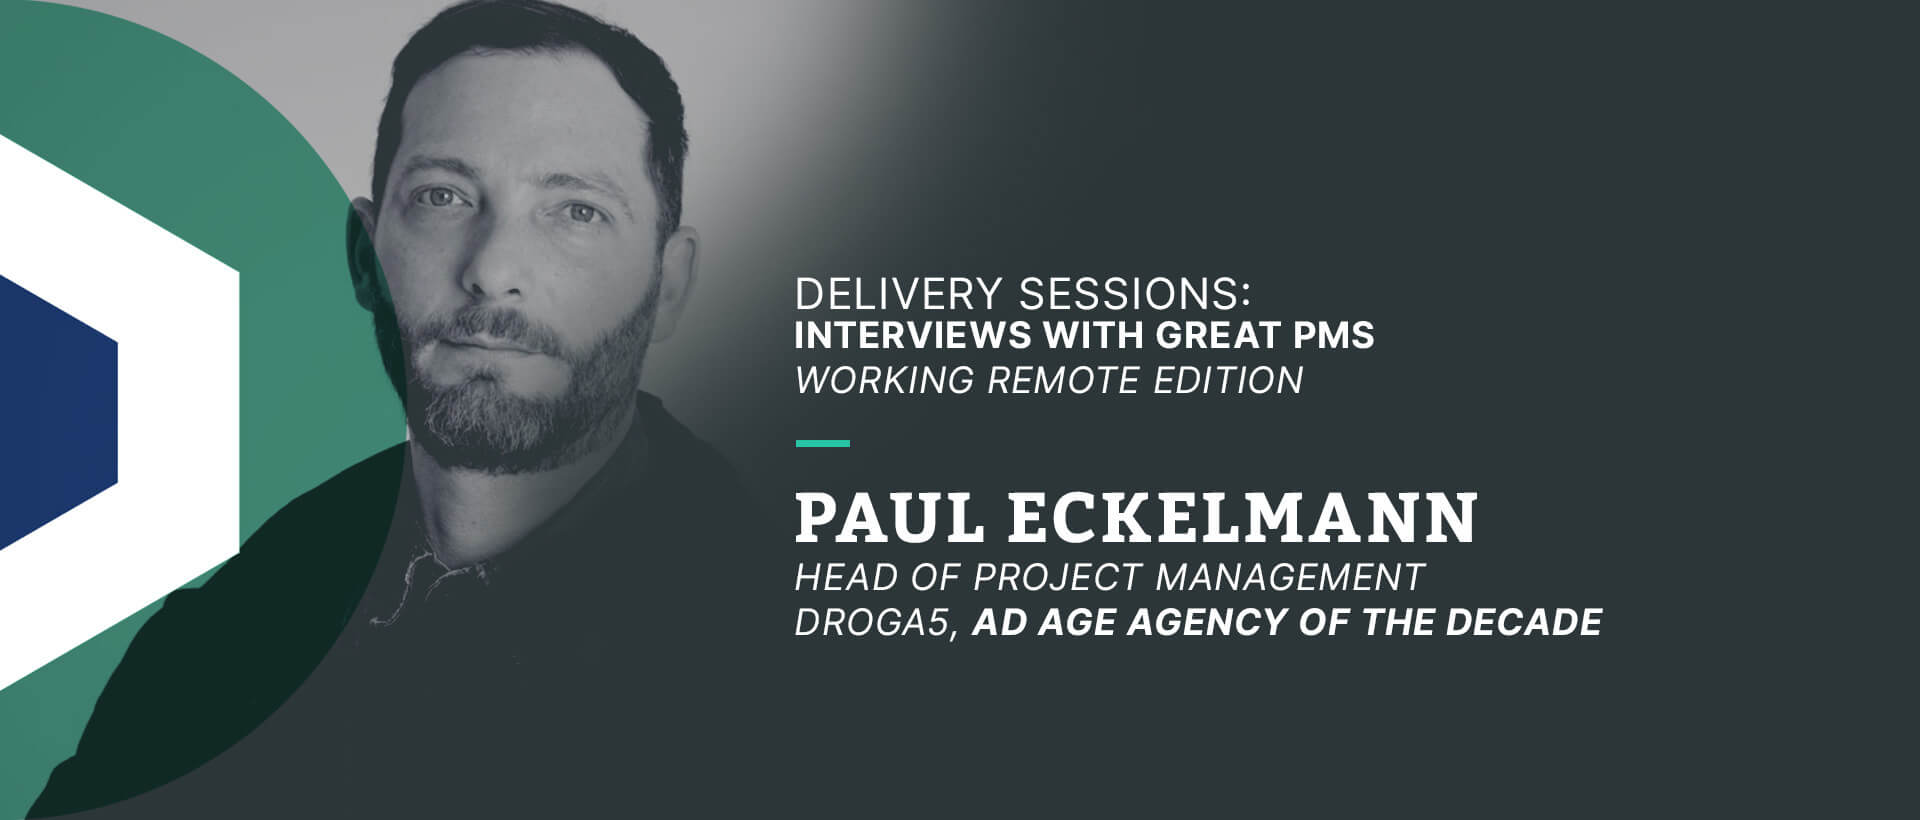 Paul Eckelmann, Head of Project Management, Droga5 – Ad Age Agency of the Decade